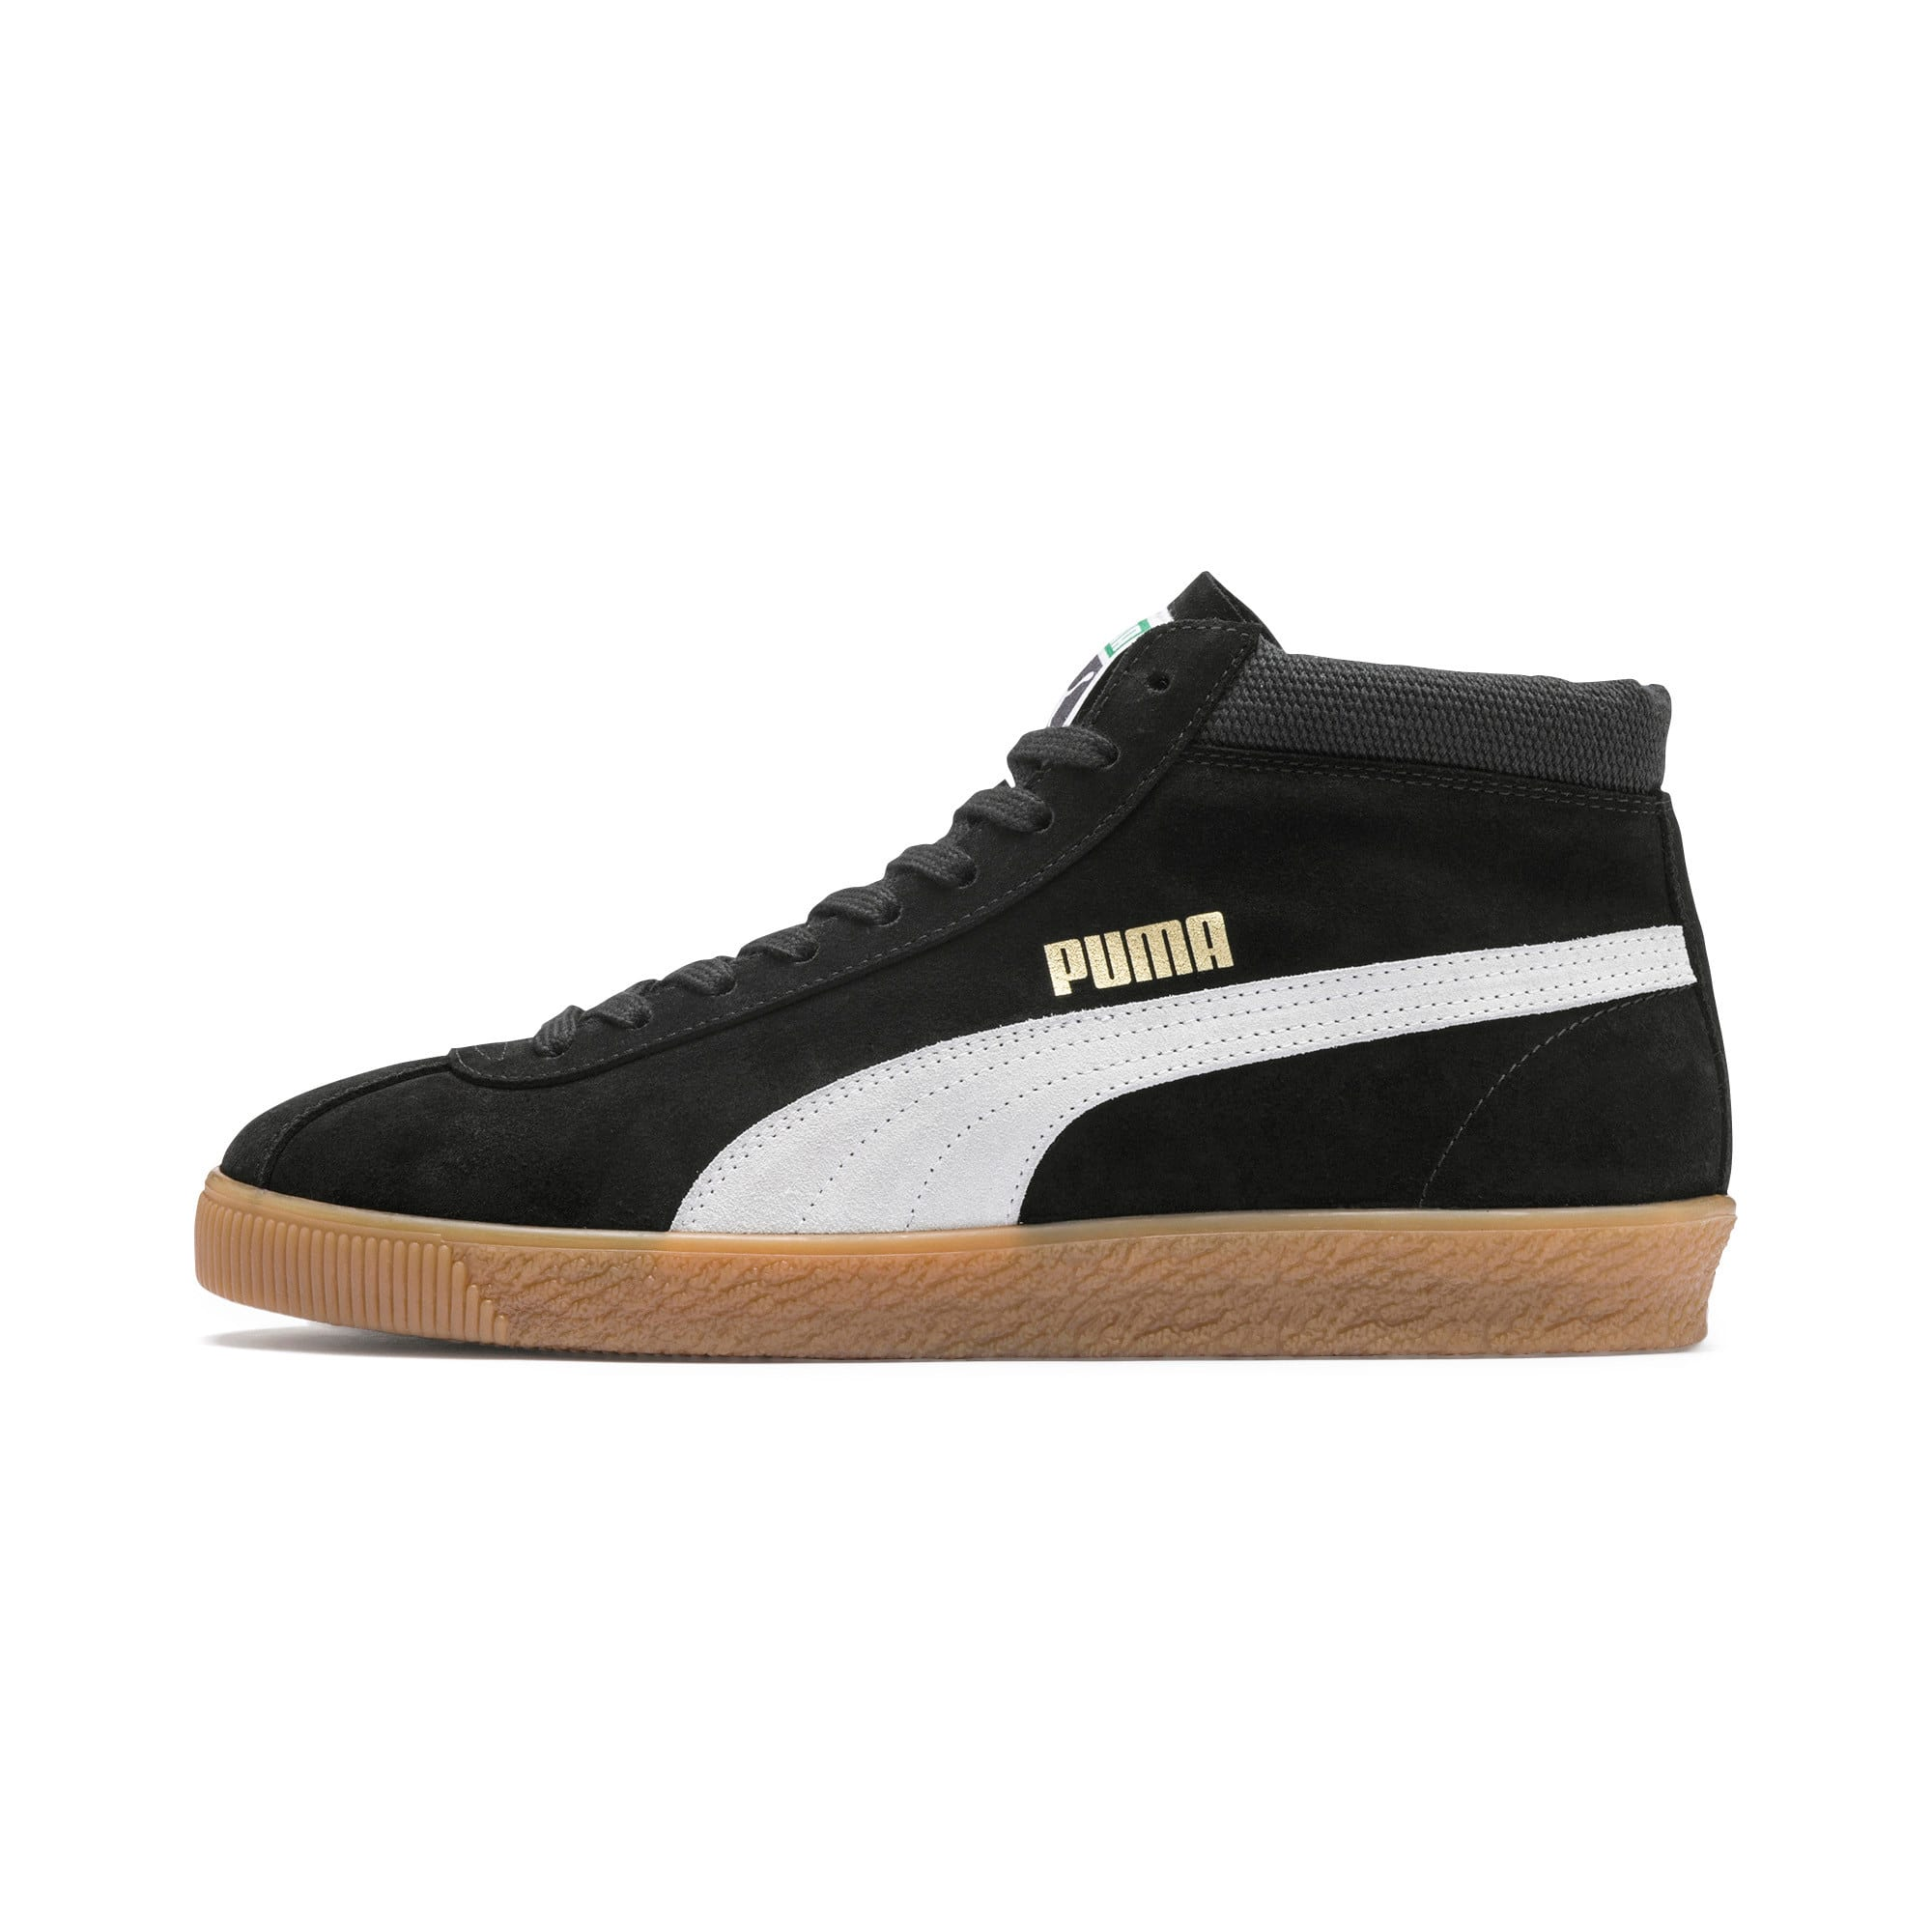 Thumbnail 1 of スウェード '68 ミッド スニーカー, Puma Black-Whisper White, medium-JPN